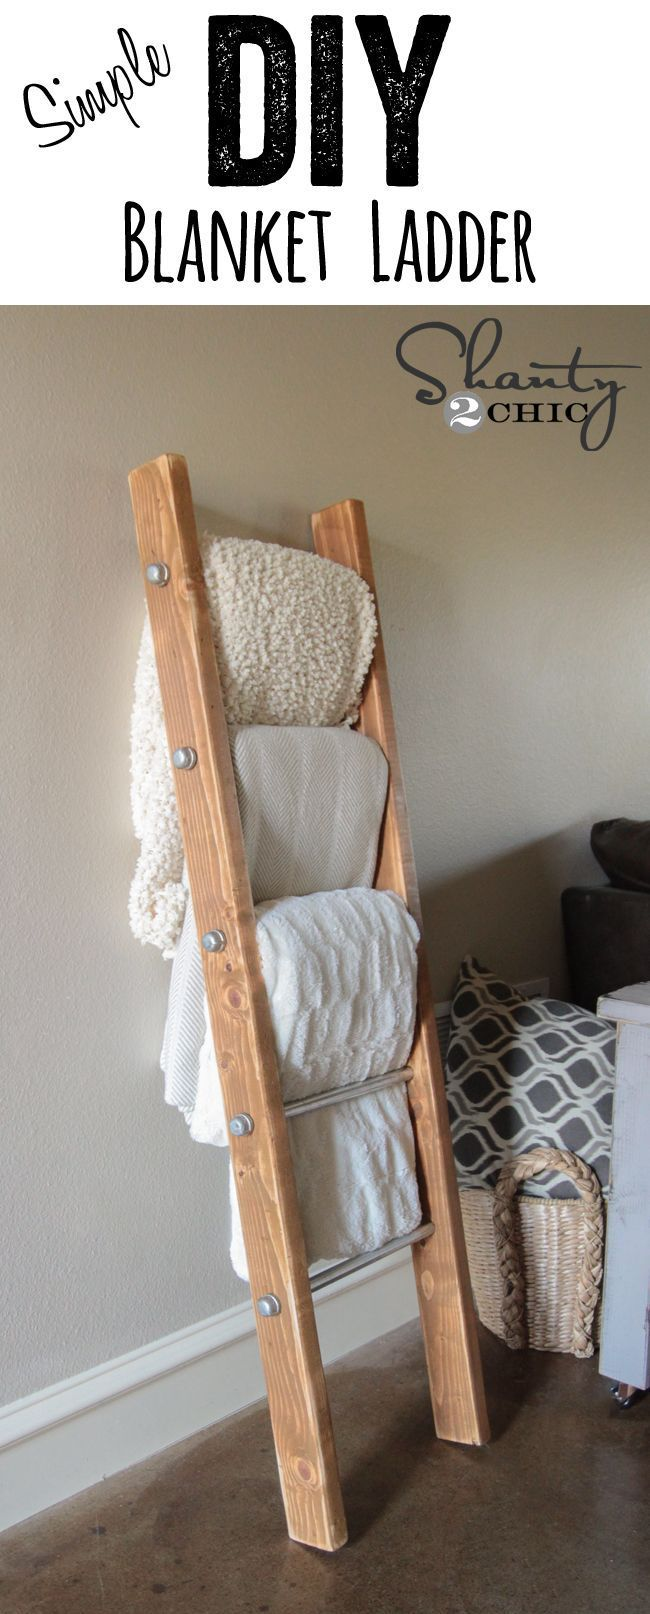 best images about idee per interni on pinterest blanket ladder